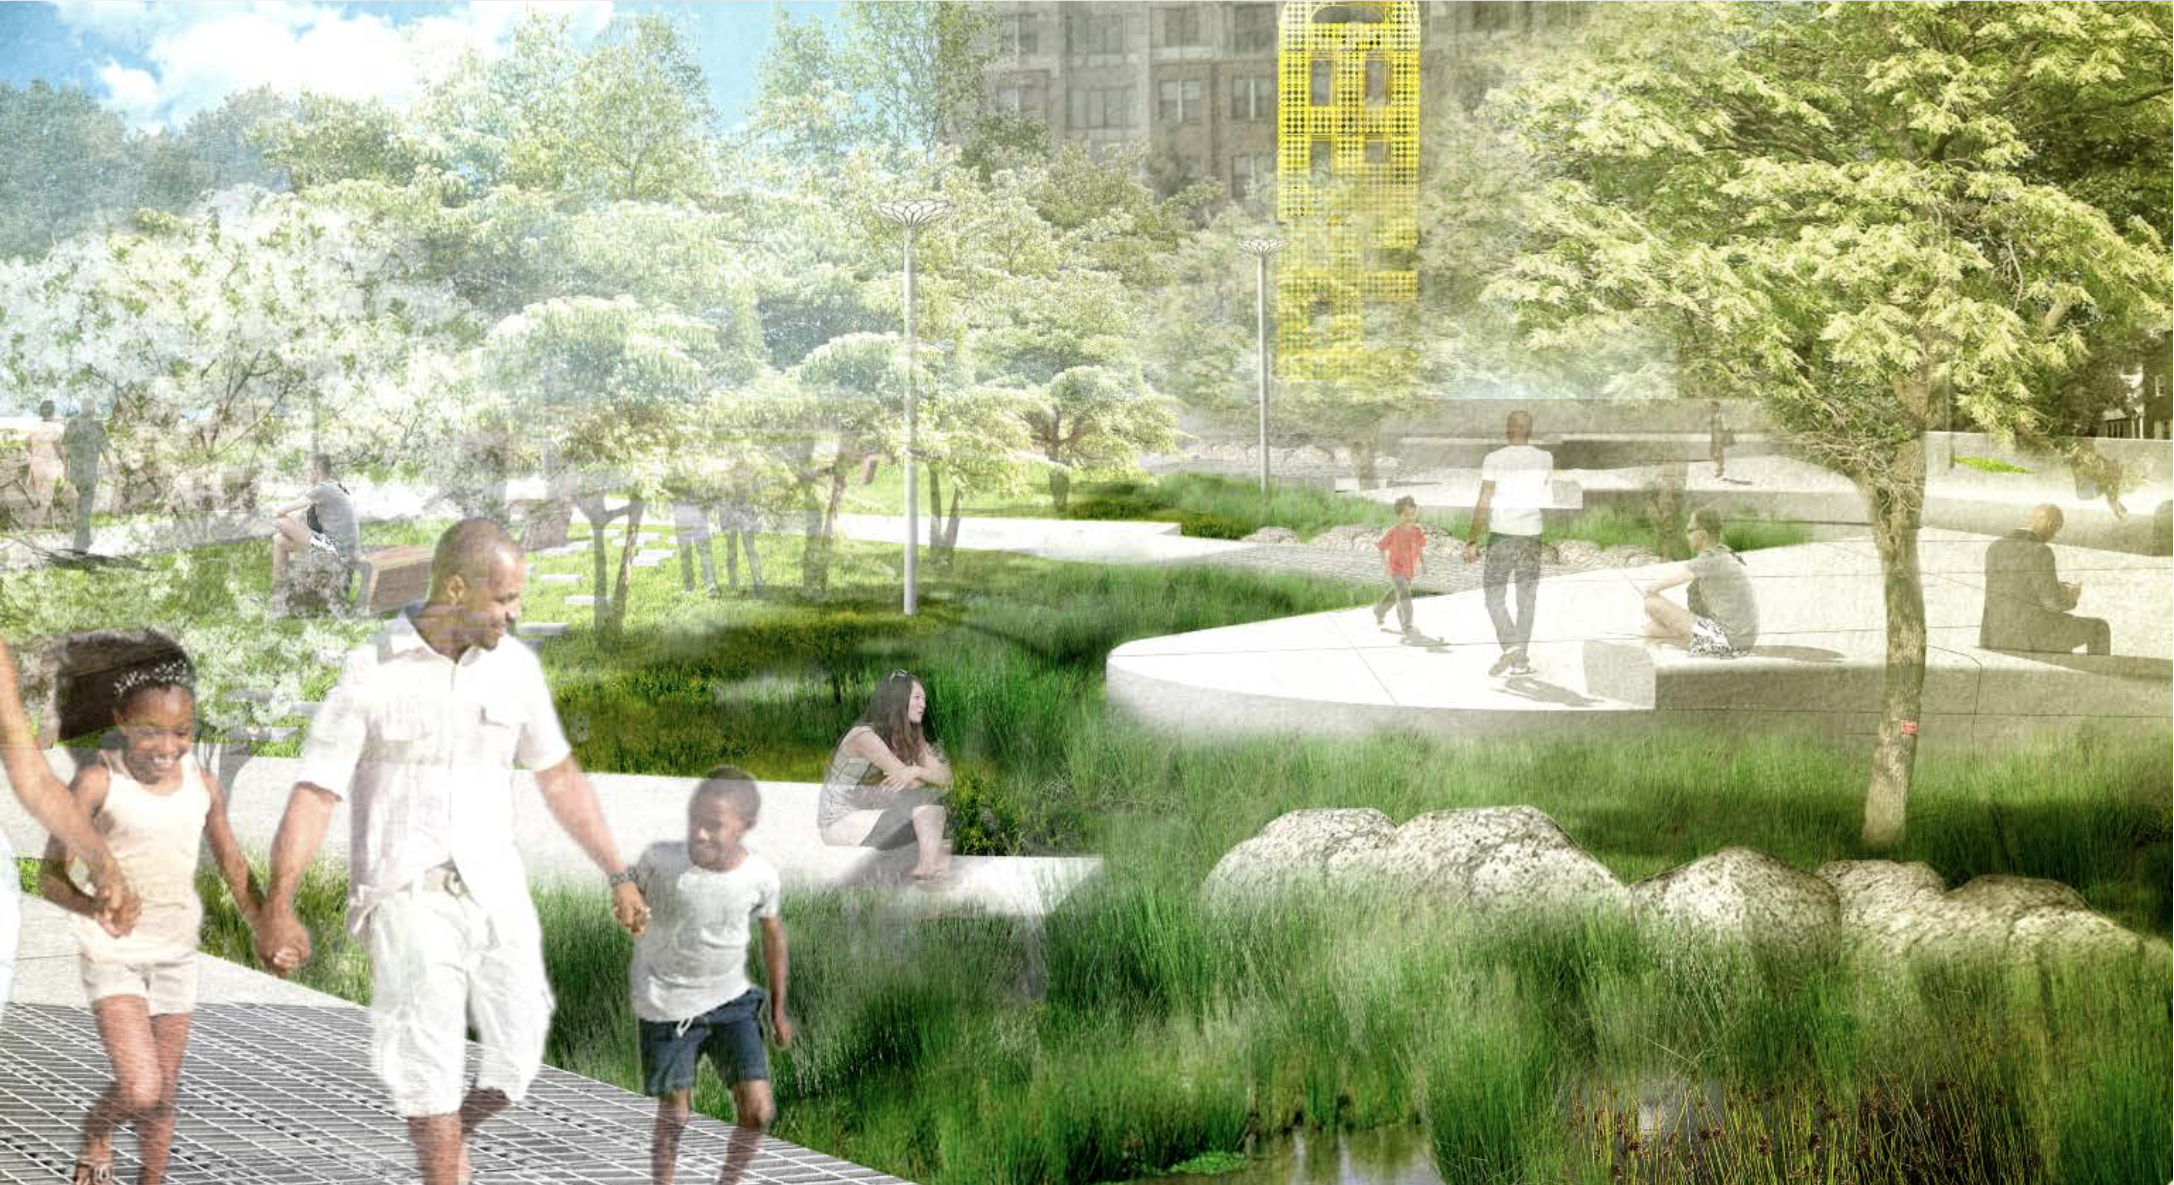 Conceptual rendering of John Robinson, Jr. Town Square from the official plan approved by Arlington County